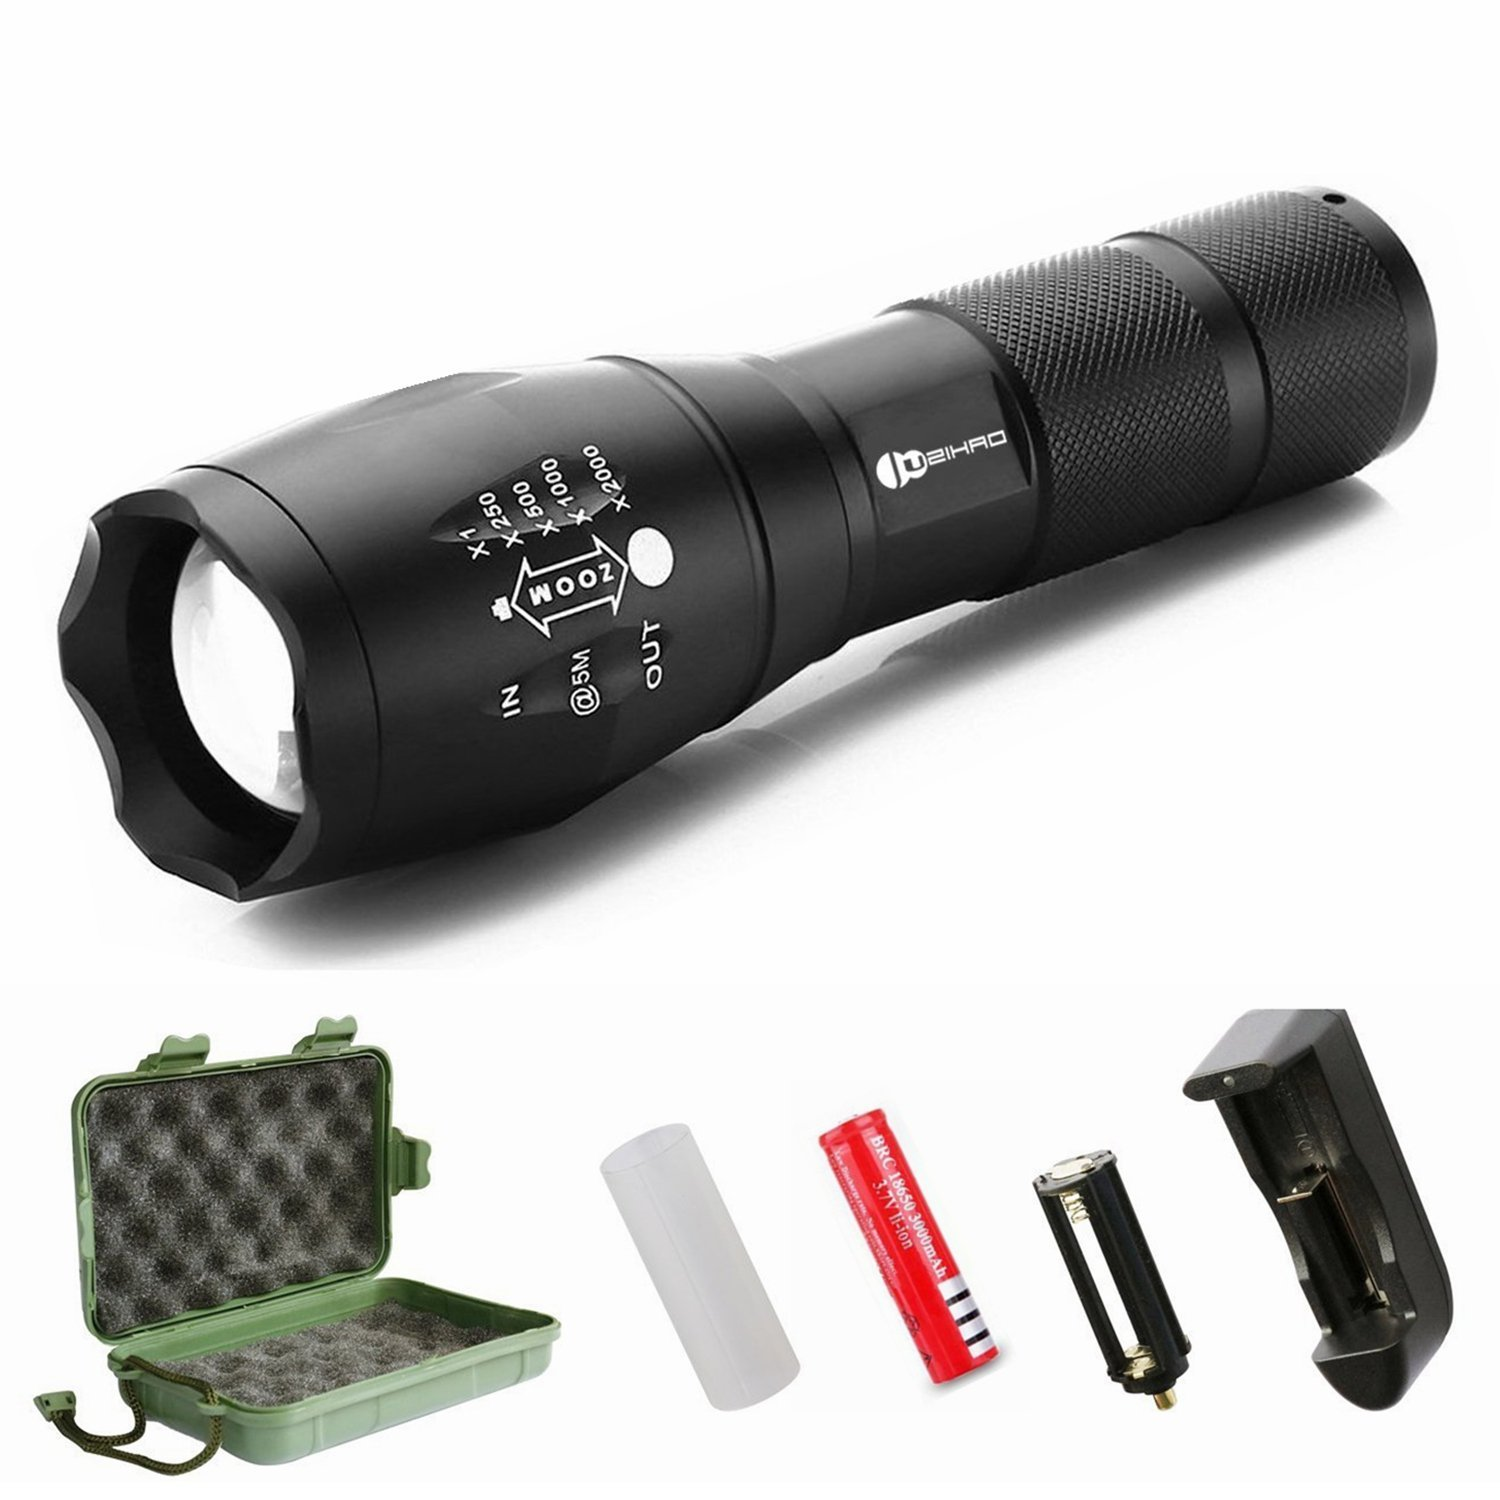 Juzihao JM-T6 Super Bright 1000 Lumens 5 Modes Mini CREE LED Zoomable Flashlights, Water Resistant Portable Camping Torch Light Tactical Flashlight - Rechargeable 18650 Batteries and Charger Included